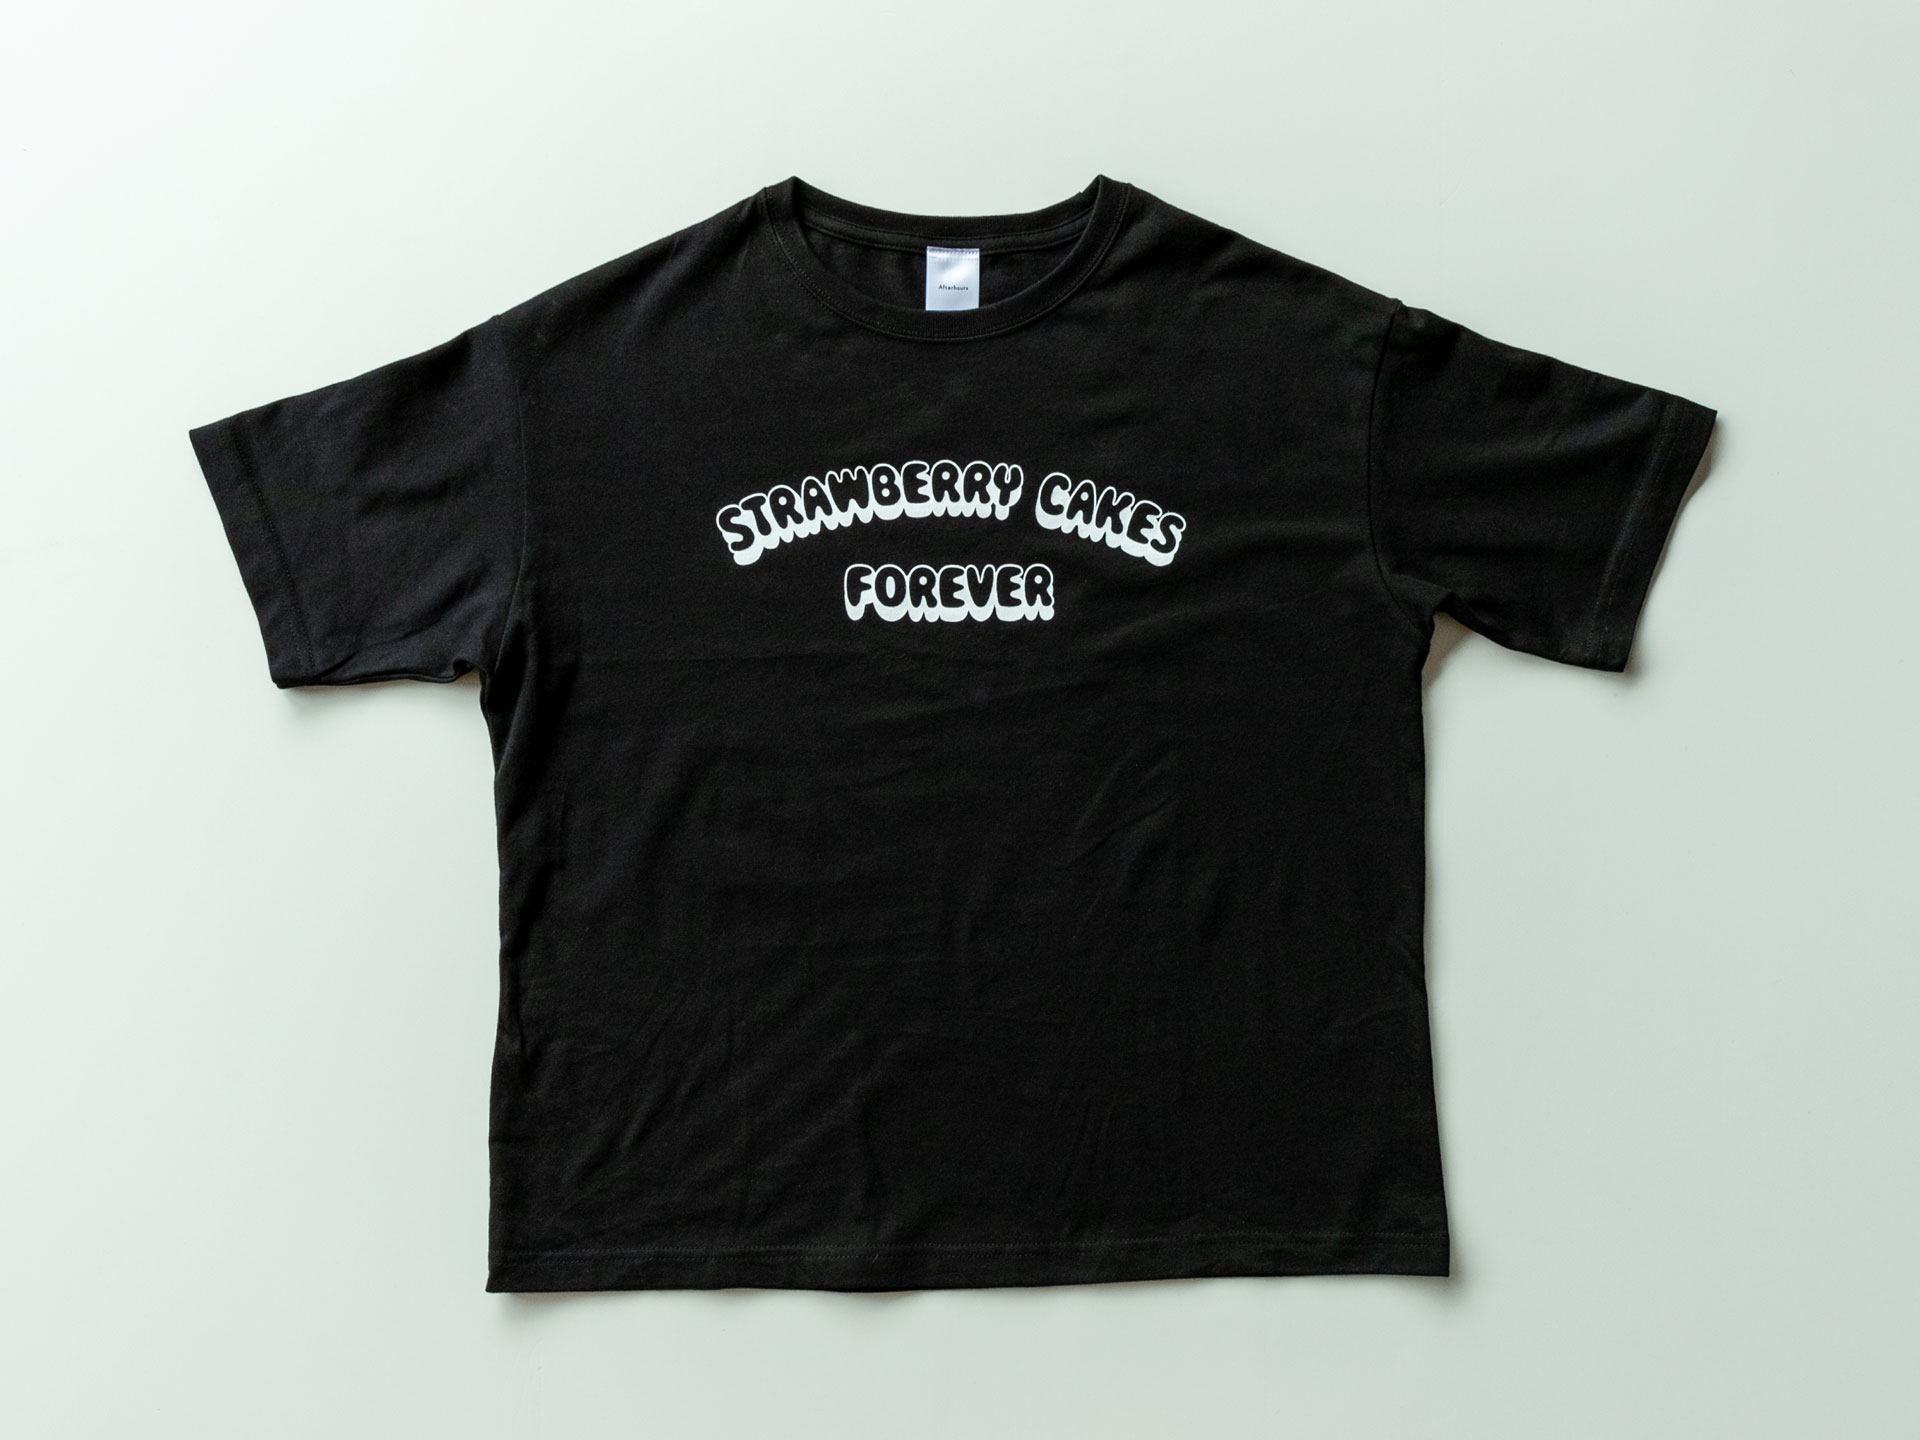 Afterhours T-Shirt「STRAWBERRY CAKES FOREVER」